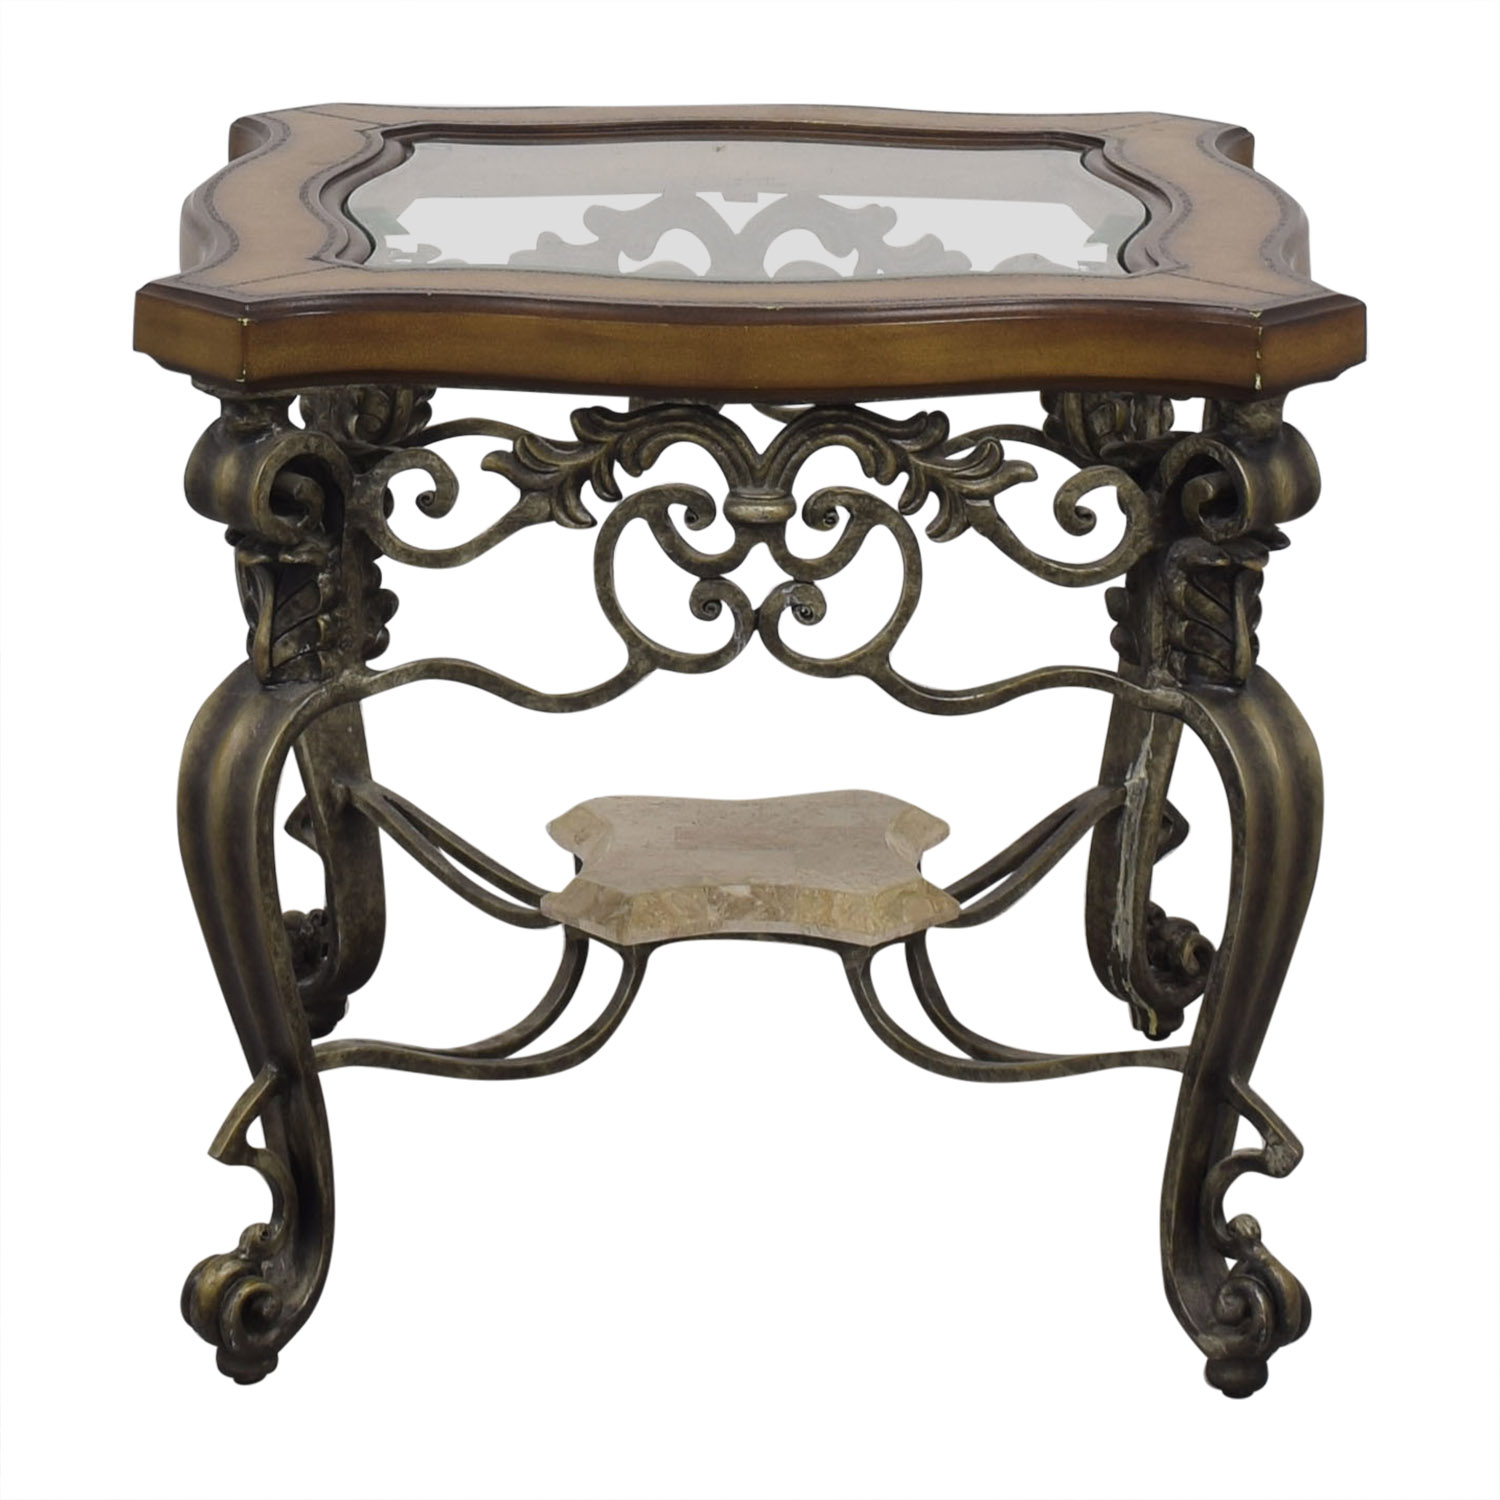 buy Thomasville Thomasville Decorative End Table online